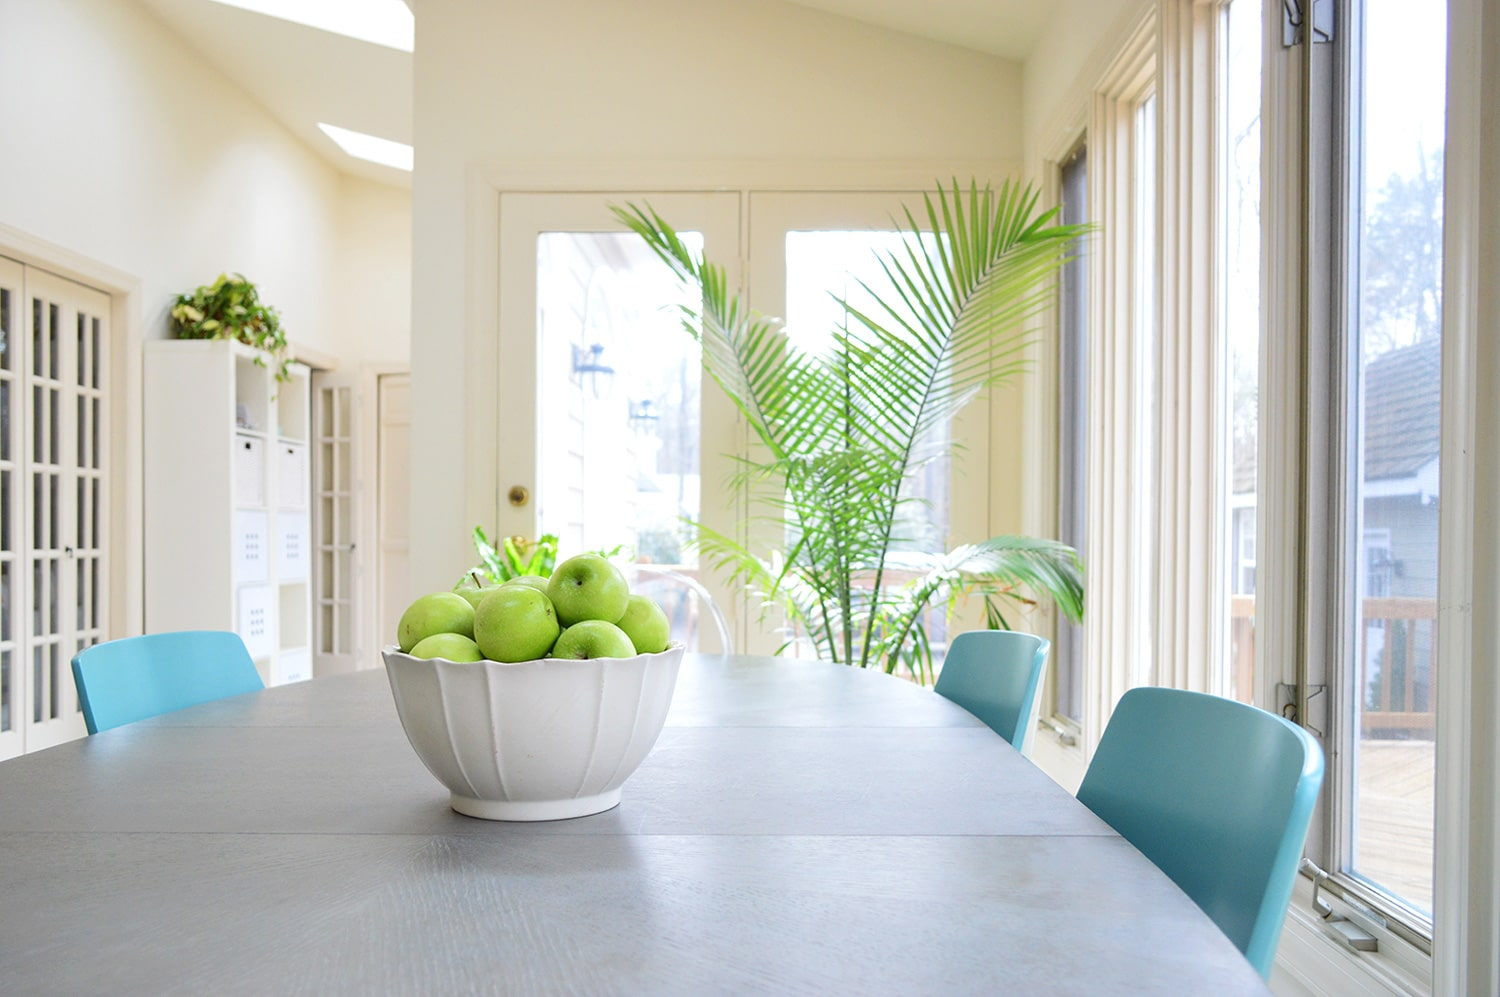 gray breakfast table with bowl of green apples on it